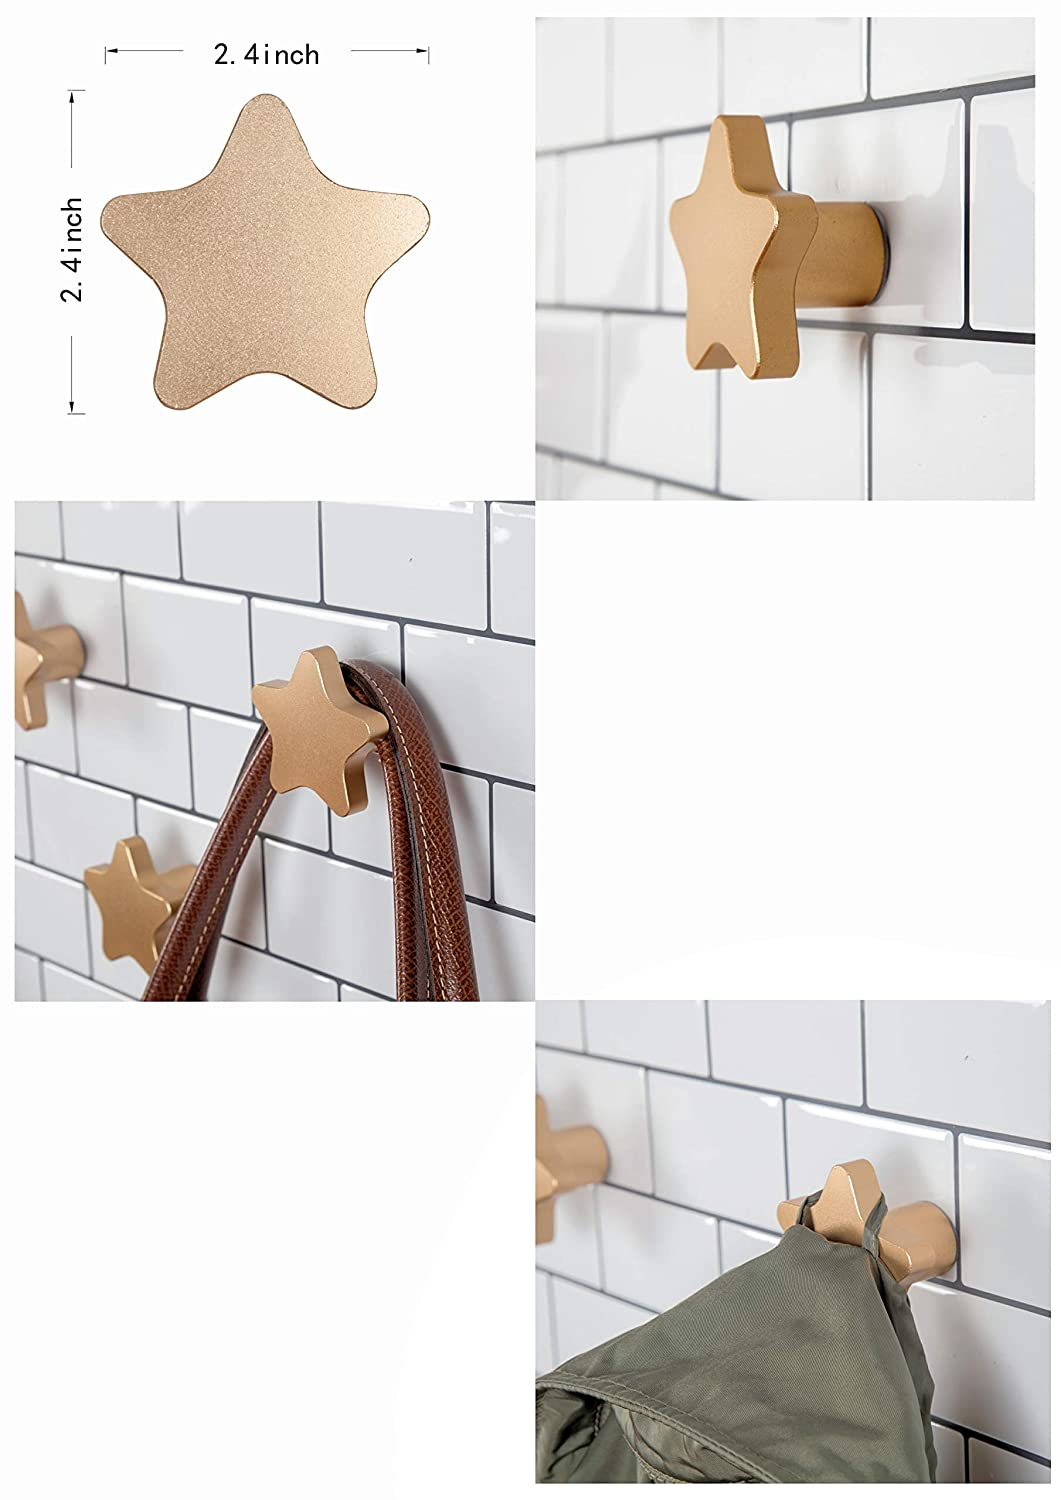 Amazon.com: Perchero de aluminio para colgar en la pared ...